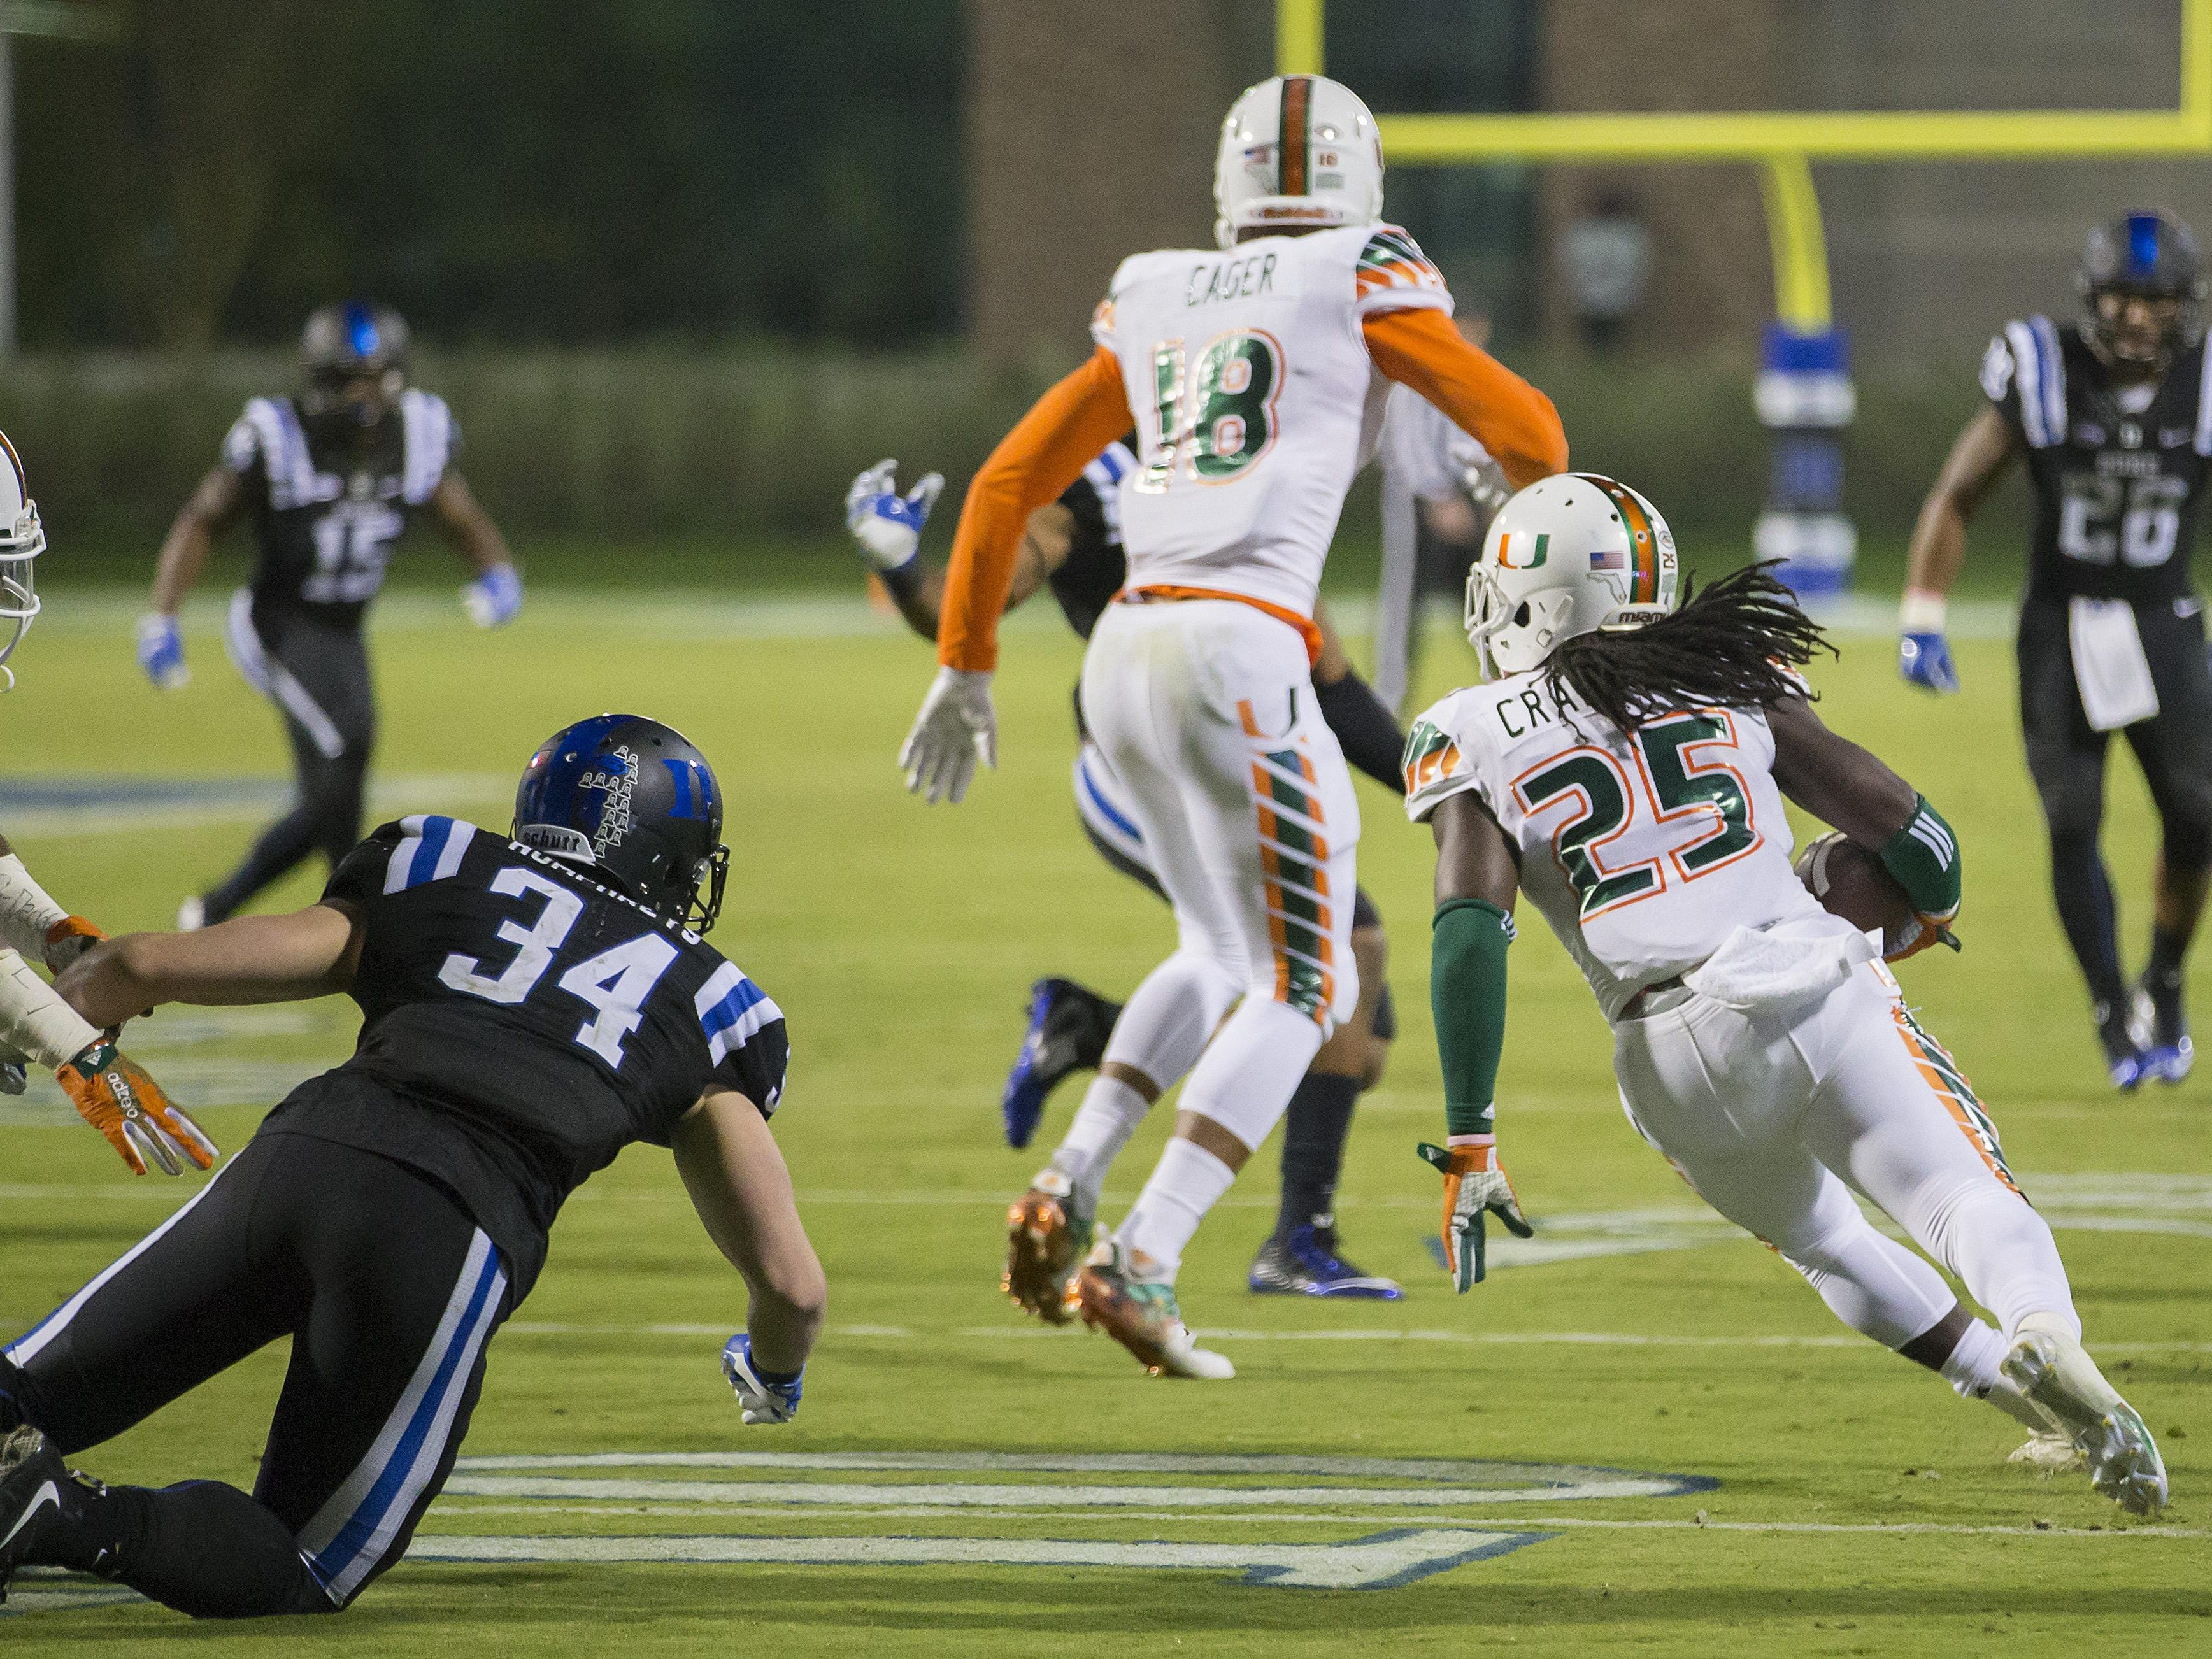 Miami's Dallas Crawford (25) returns a kickoff, which featured multiple laterals before Corn Elder subsequently received the final lateral, and scored to beat Duke 30-27 in an NCAA college football game, in Durham, N.C., Saturday, Oct. 31, 2015. (AP Photo/Rob Brown)